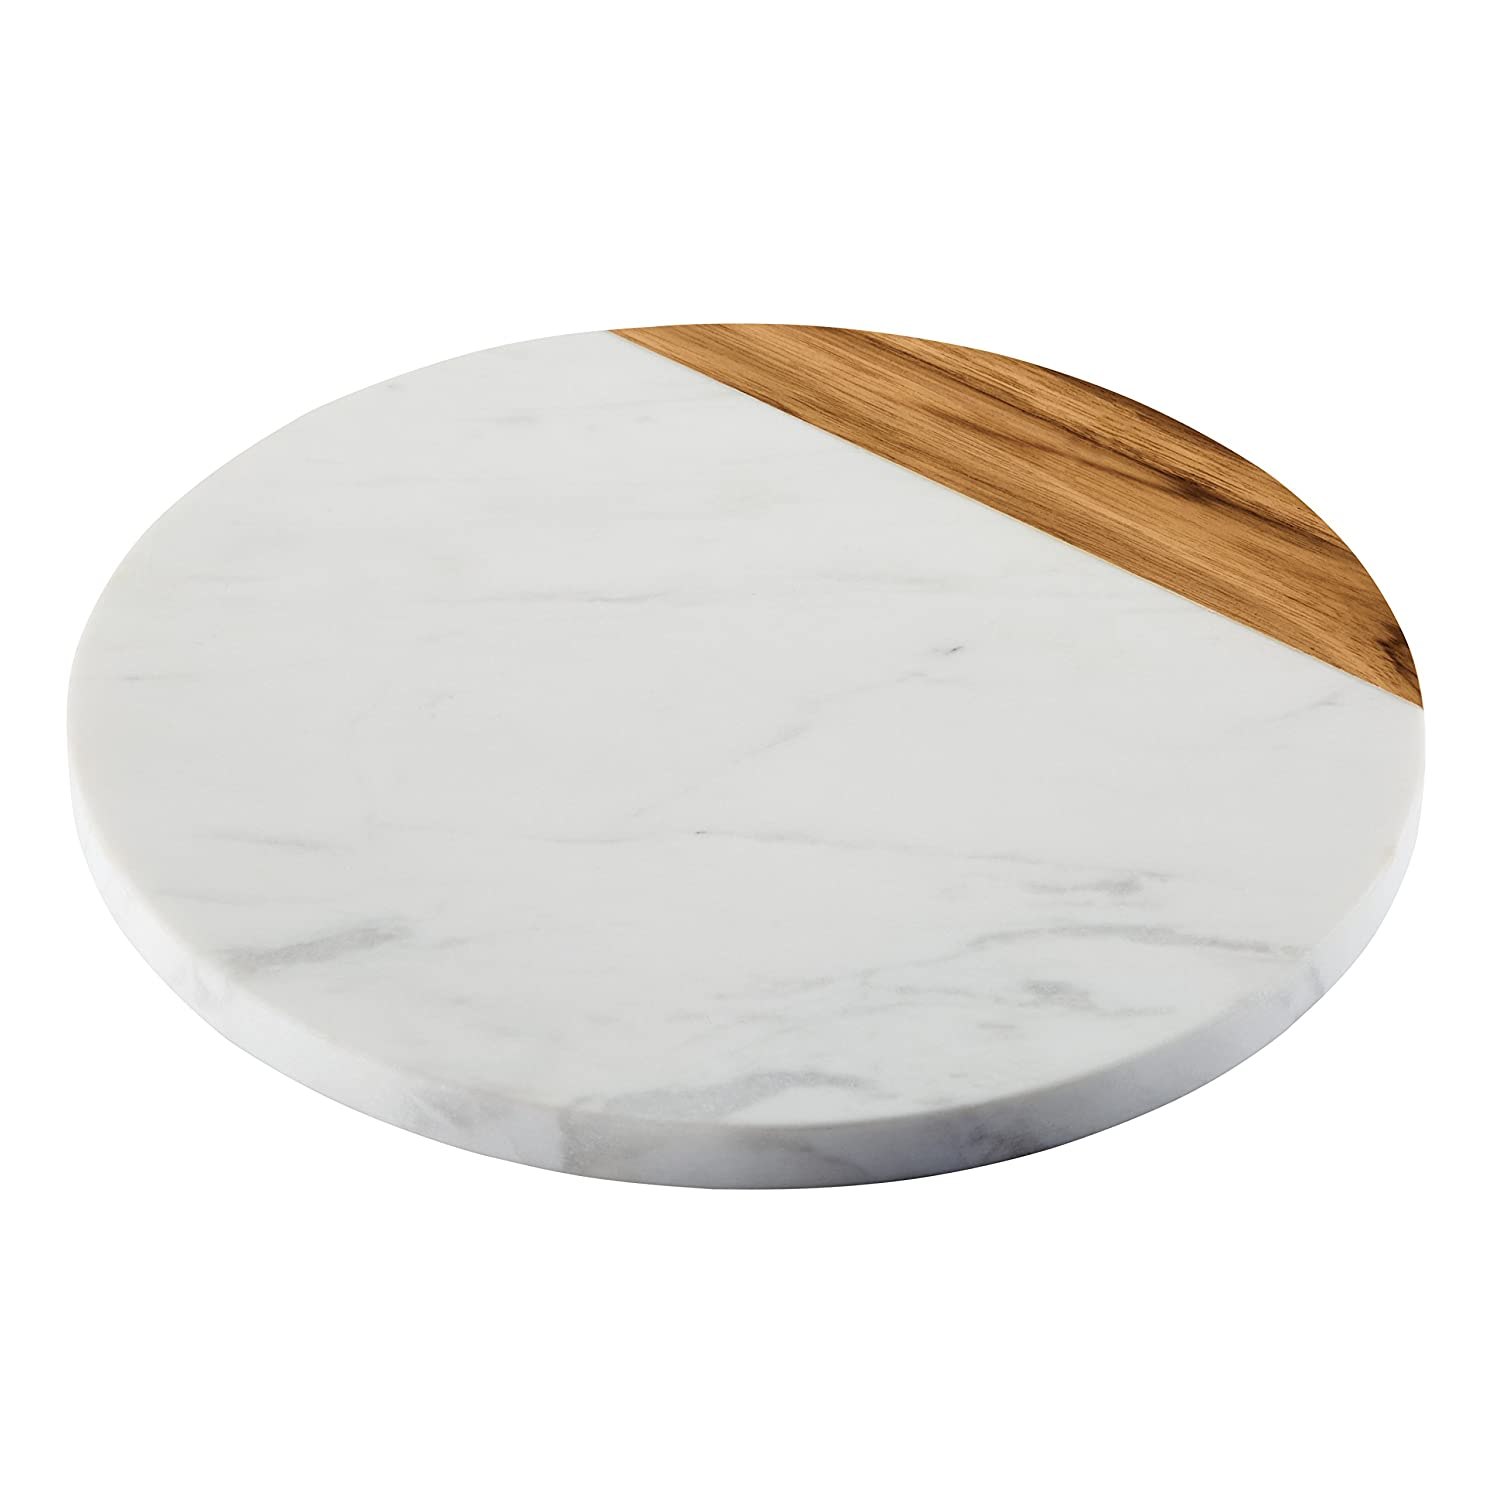 Teak Wood Serving Board Anolon Pantryware White Marble 10-Inch Round